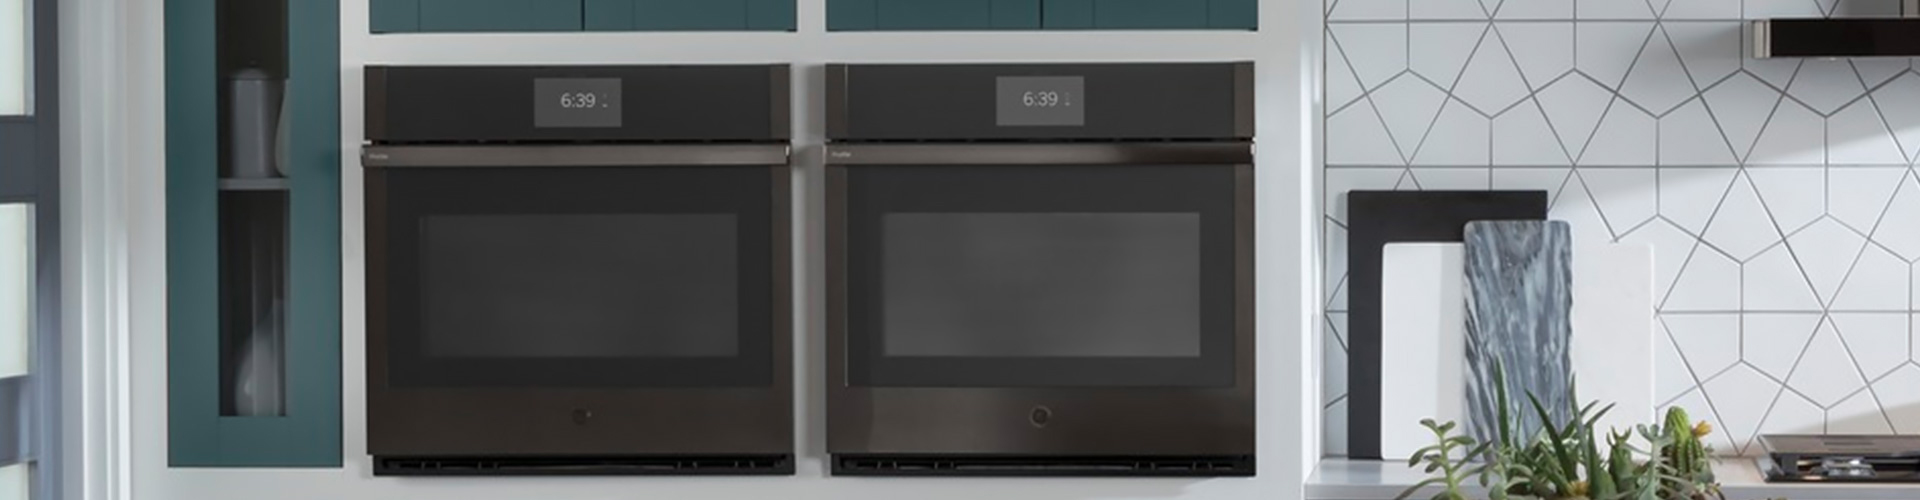 banner - Wall Ovens